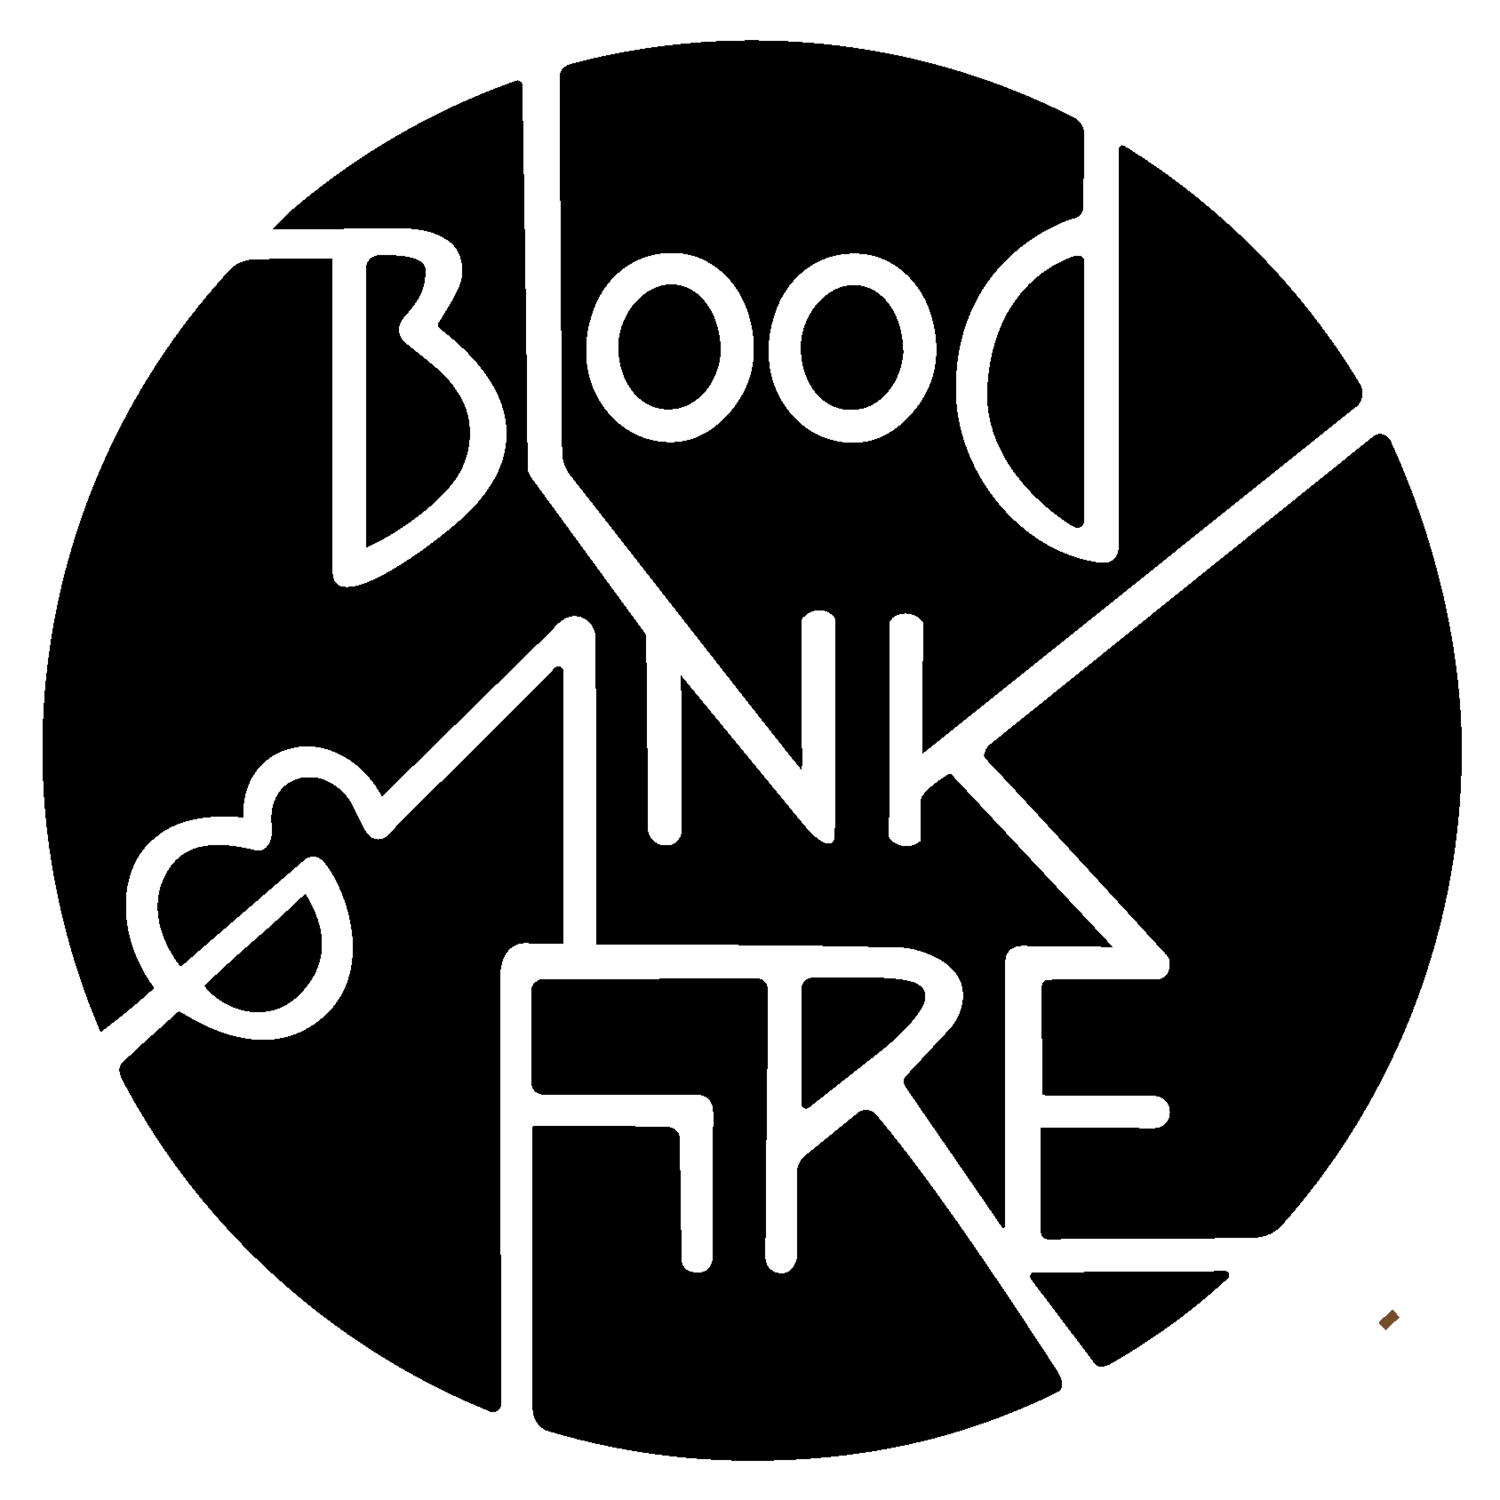 Blood Ink & Fire